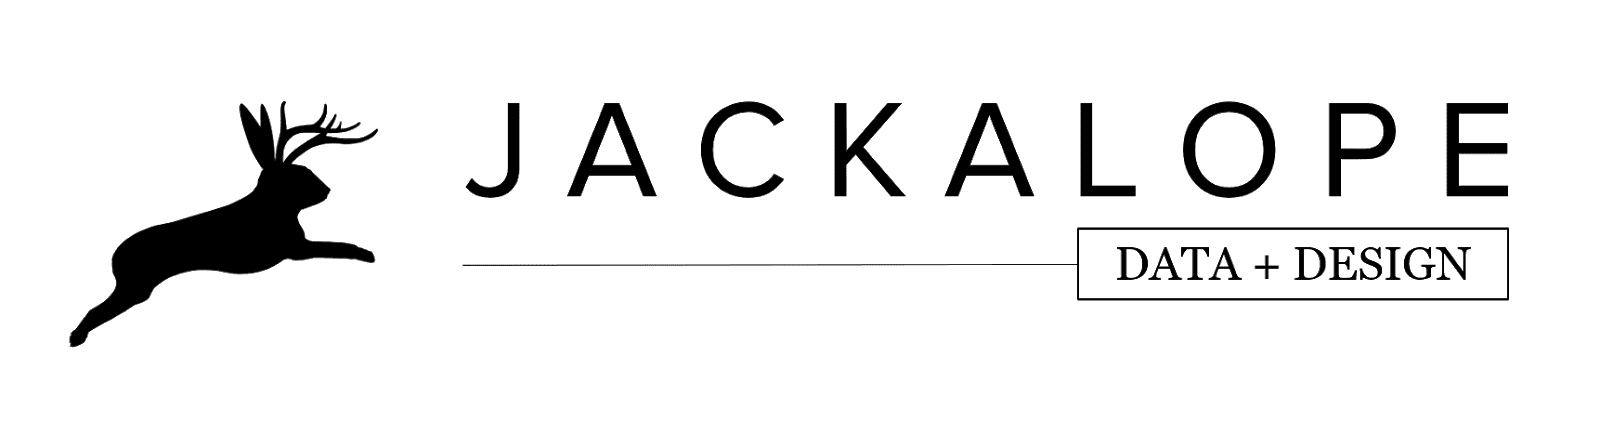 Jackalope: Data + Design